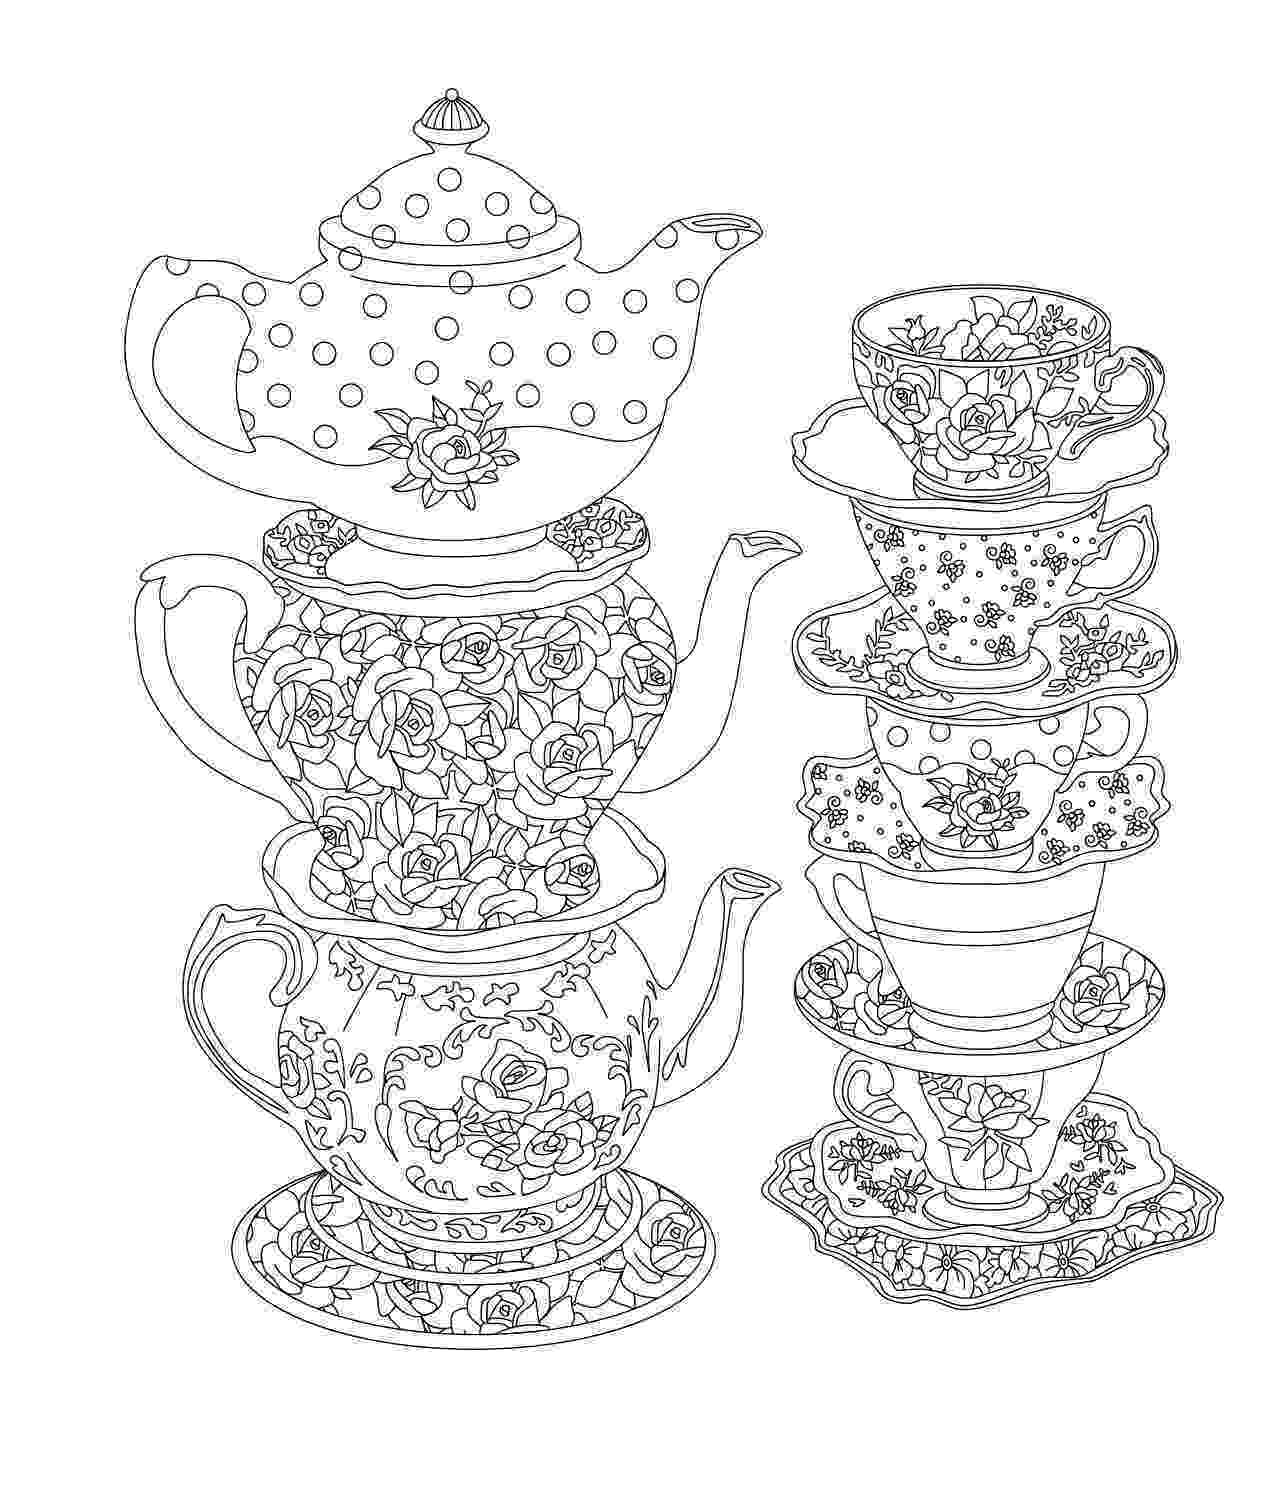 elegant coloring pages marisa hopkins living the creative life printable elegant coloring pages